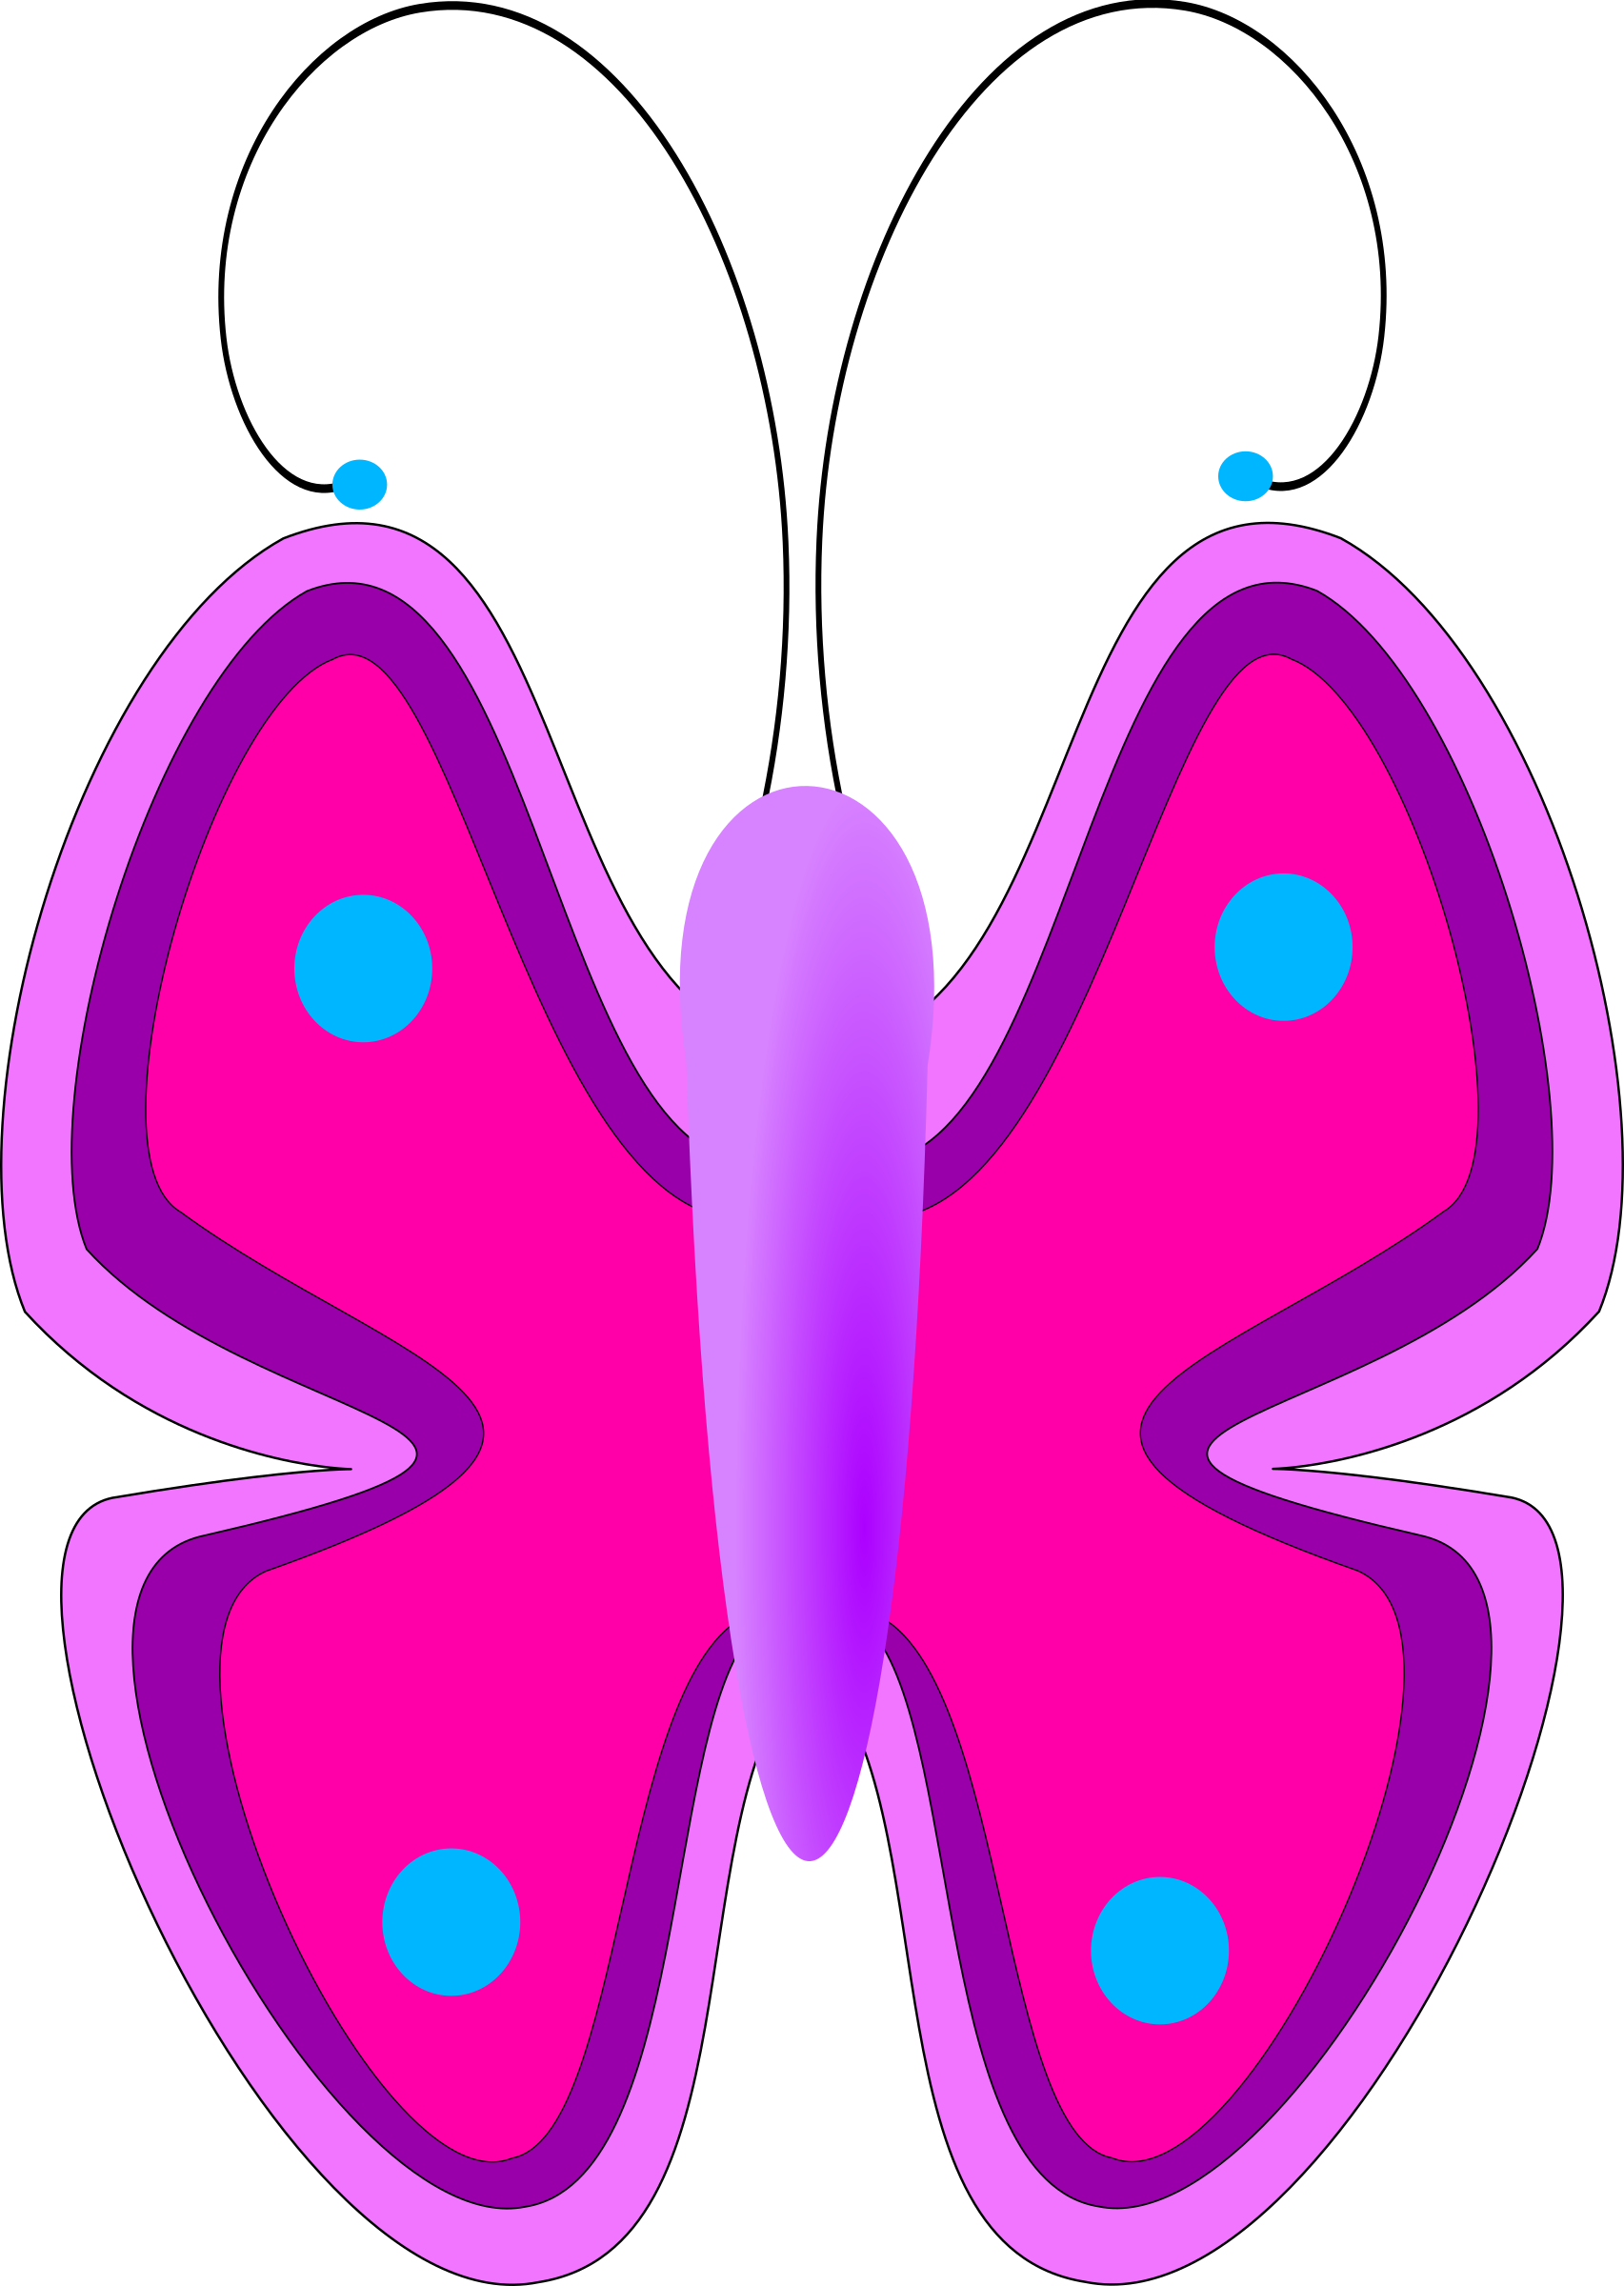 Big image png. Clipart butterfly trail